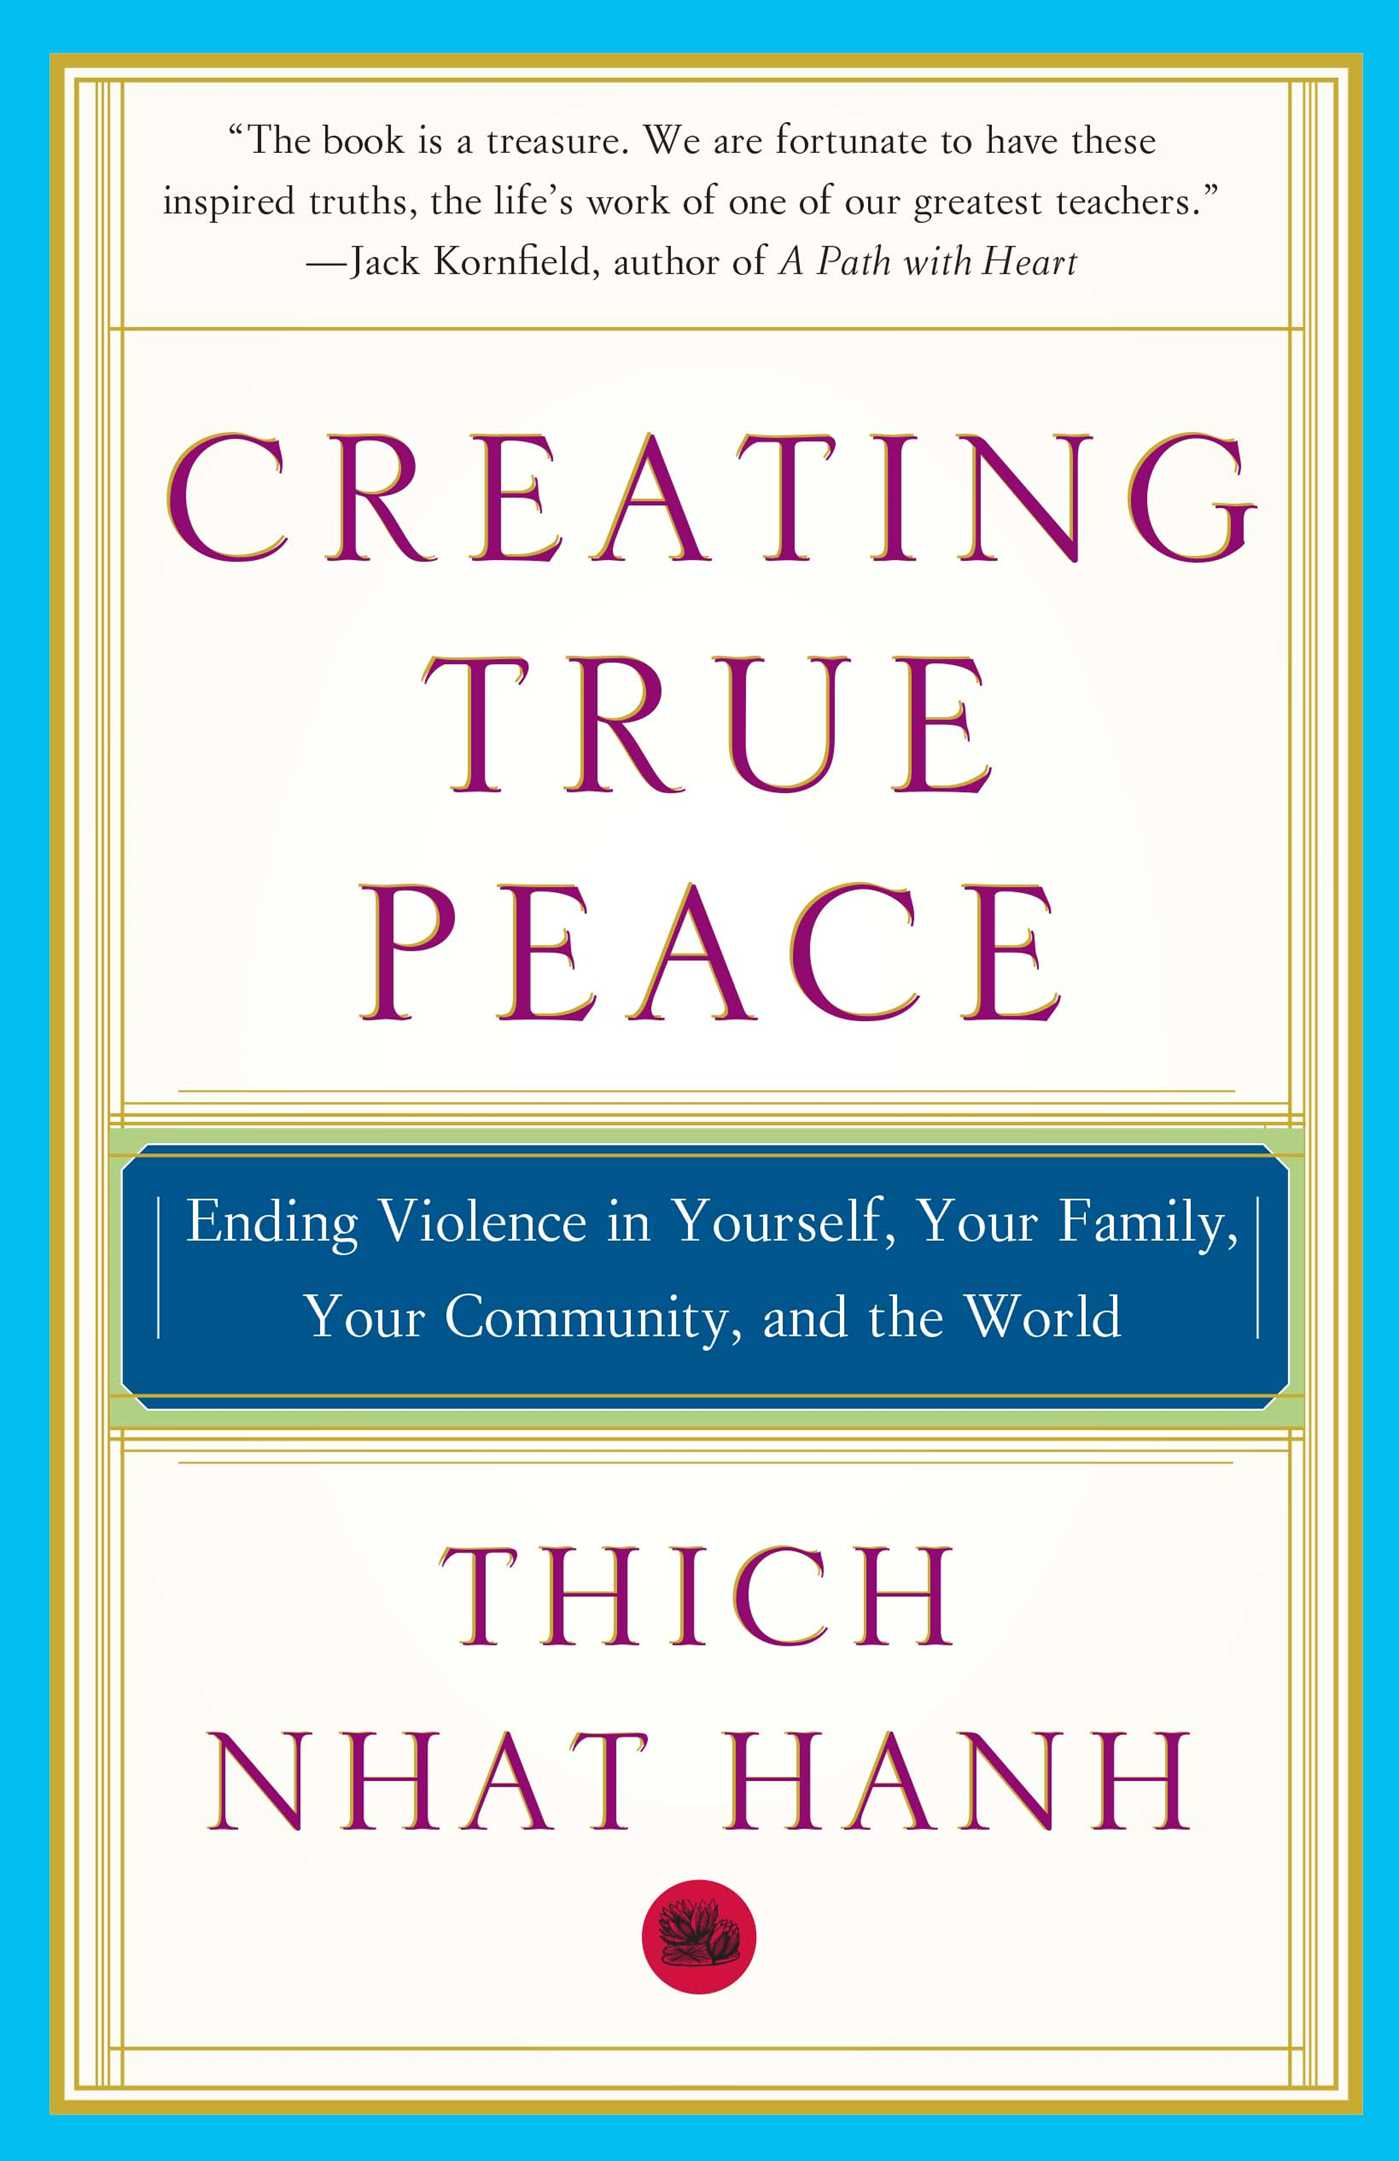 Creating true peace 9780743245203 hr